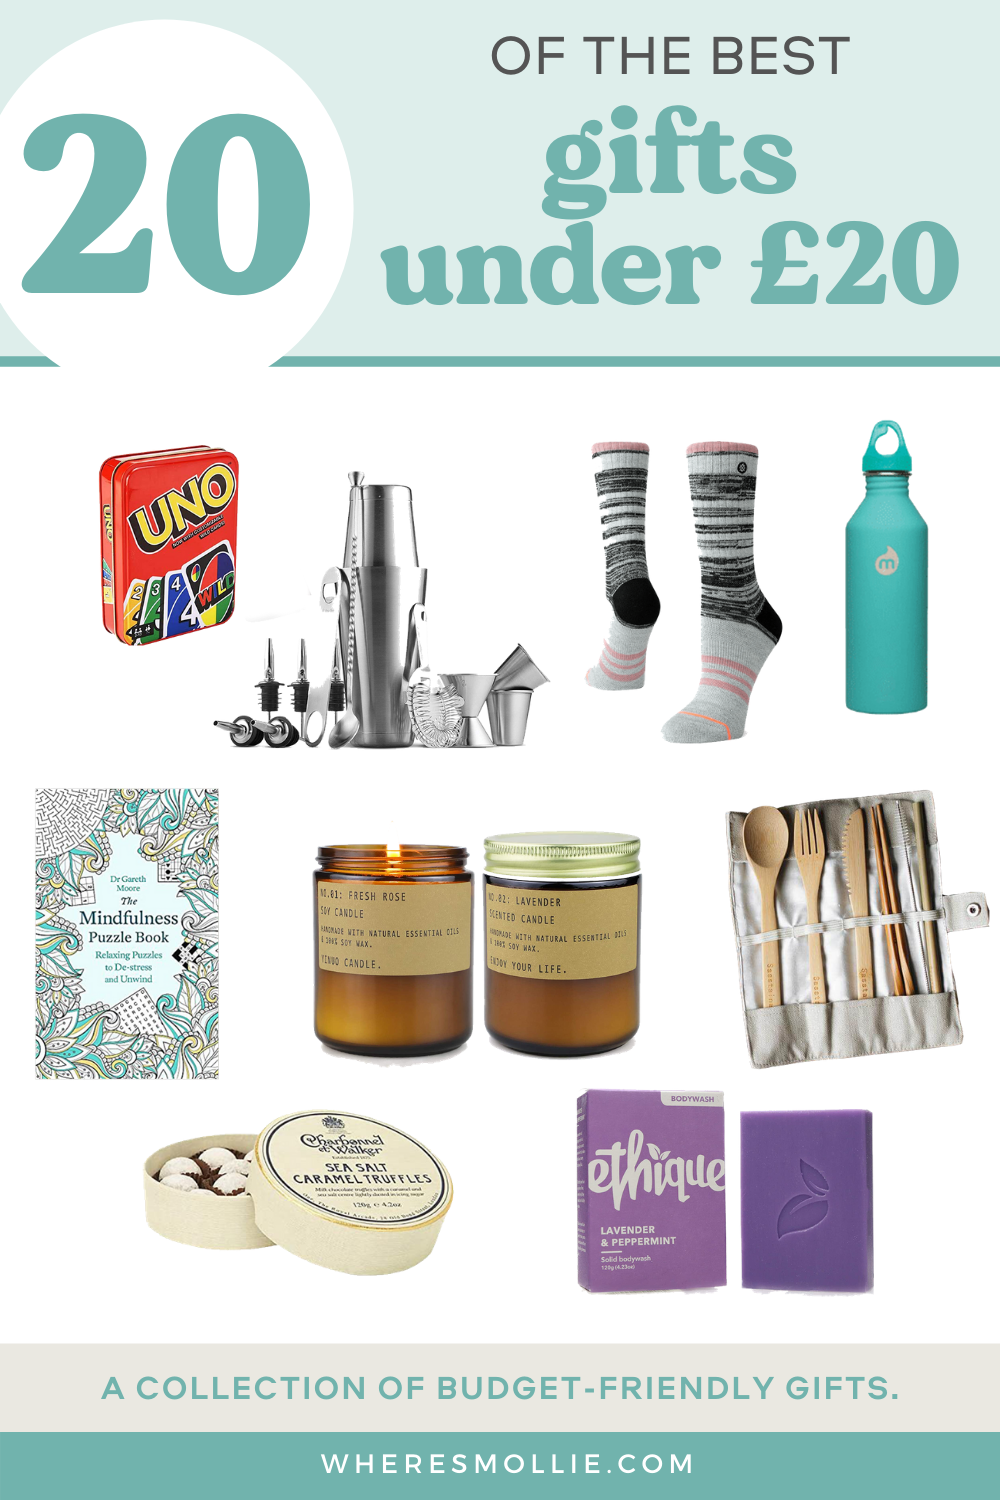 Budget friendly travel gift ideas: the ultimate gift guide